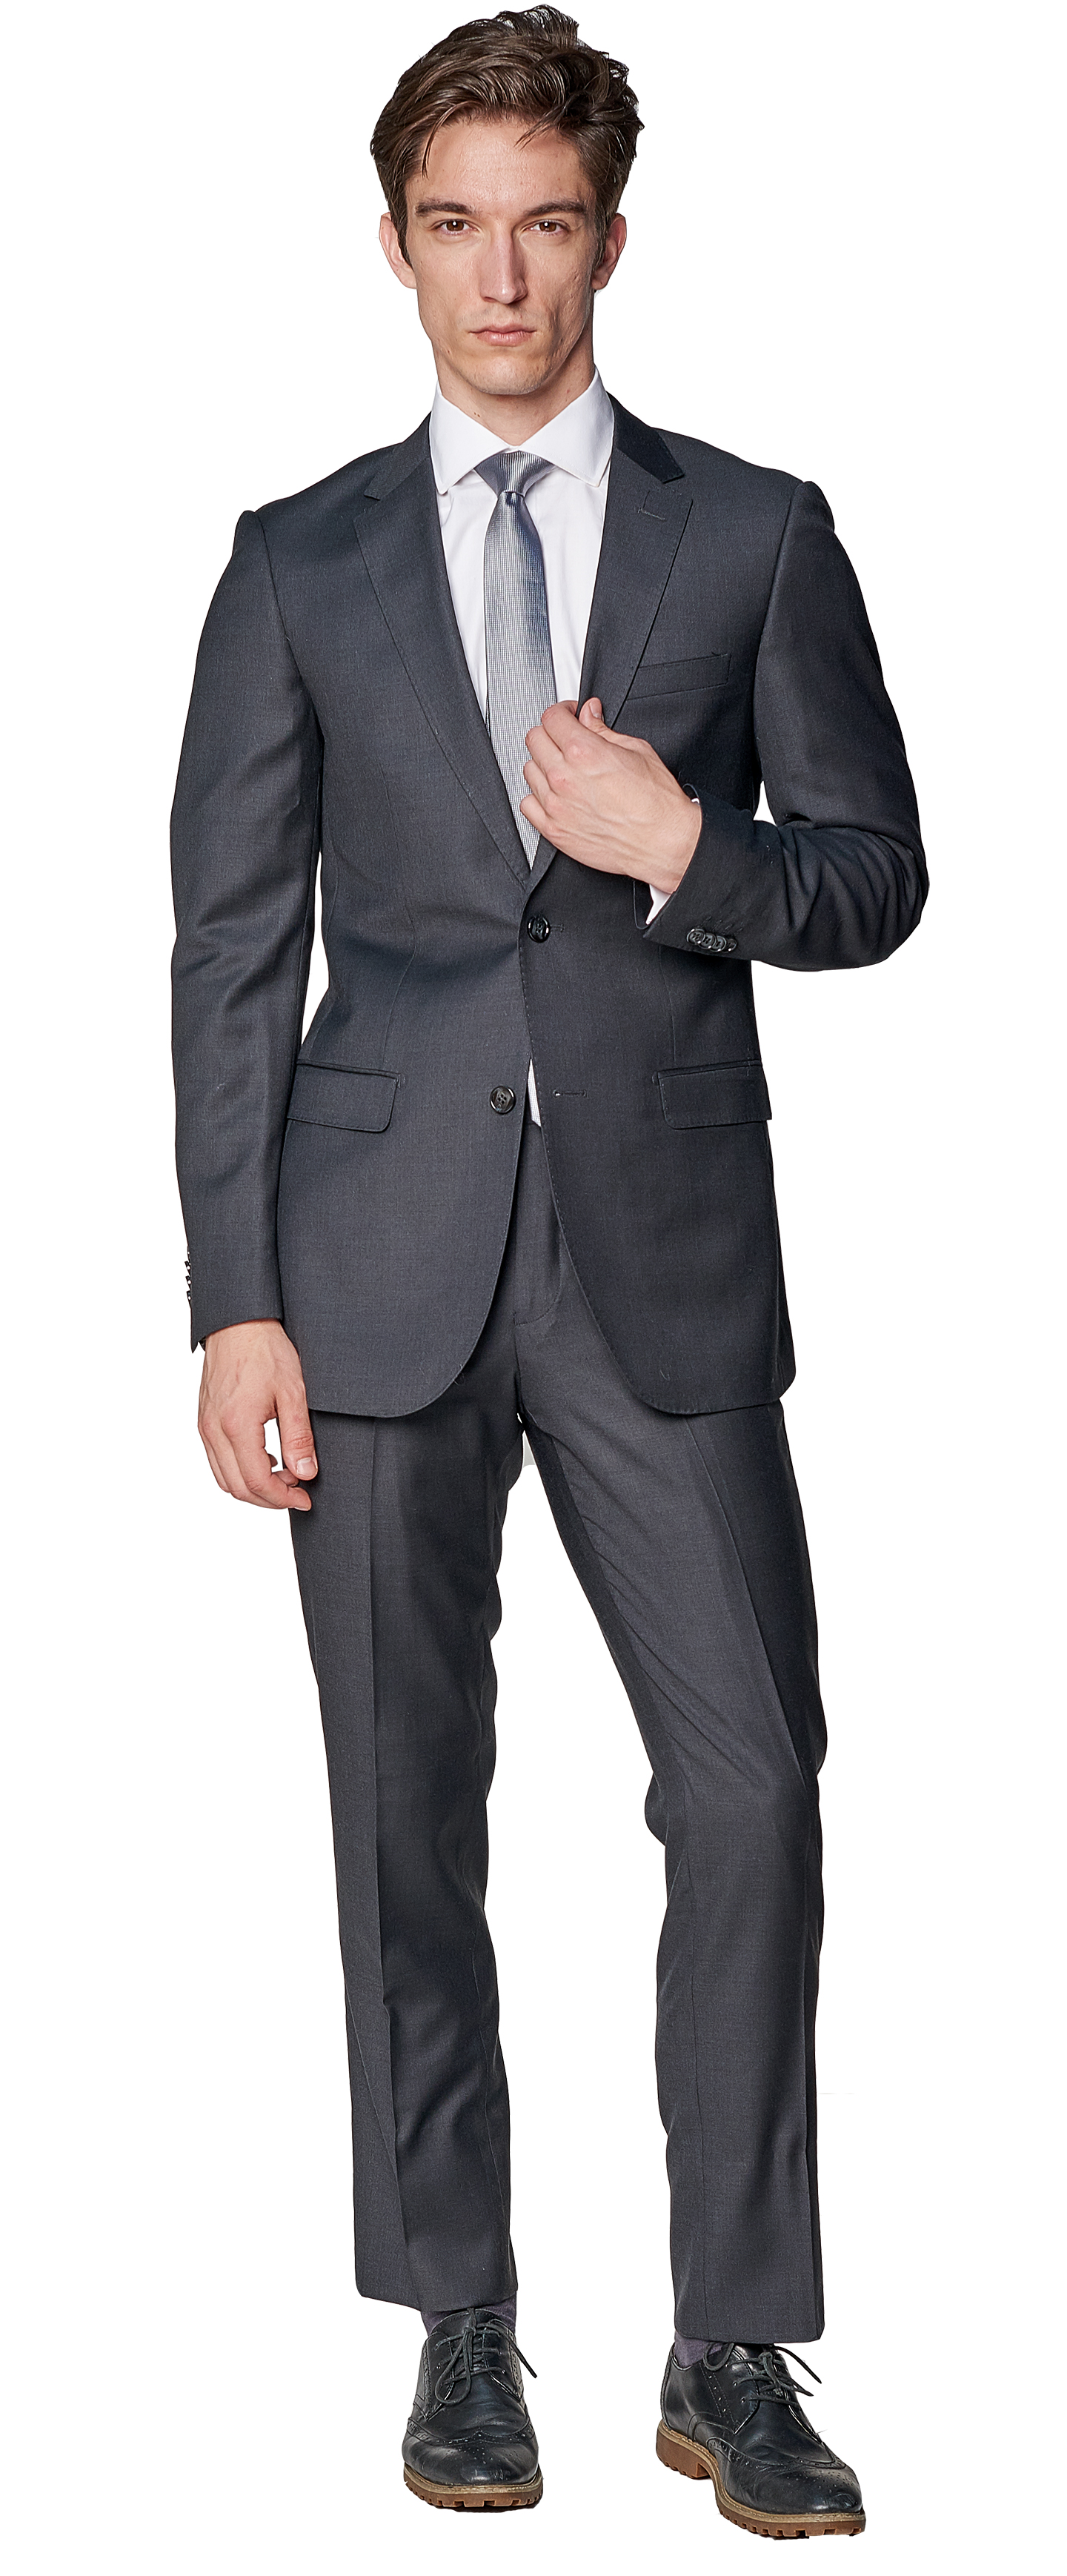 Giovanni Bresciani Charcoal Grey SuitGB-Charcoal$850.00 USD.png